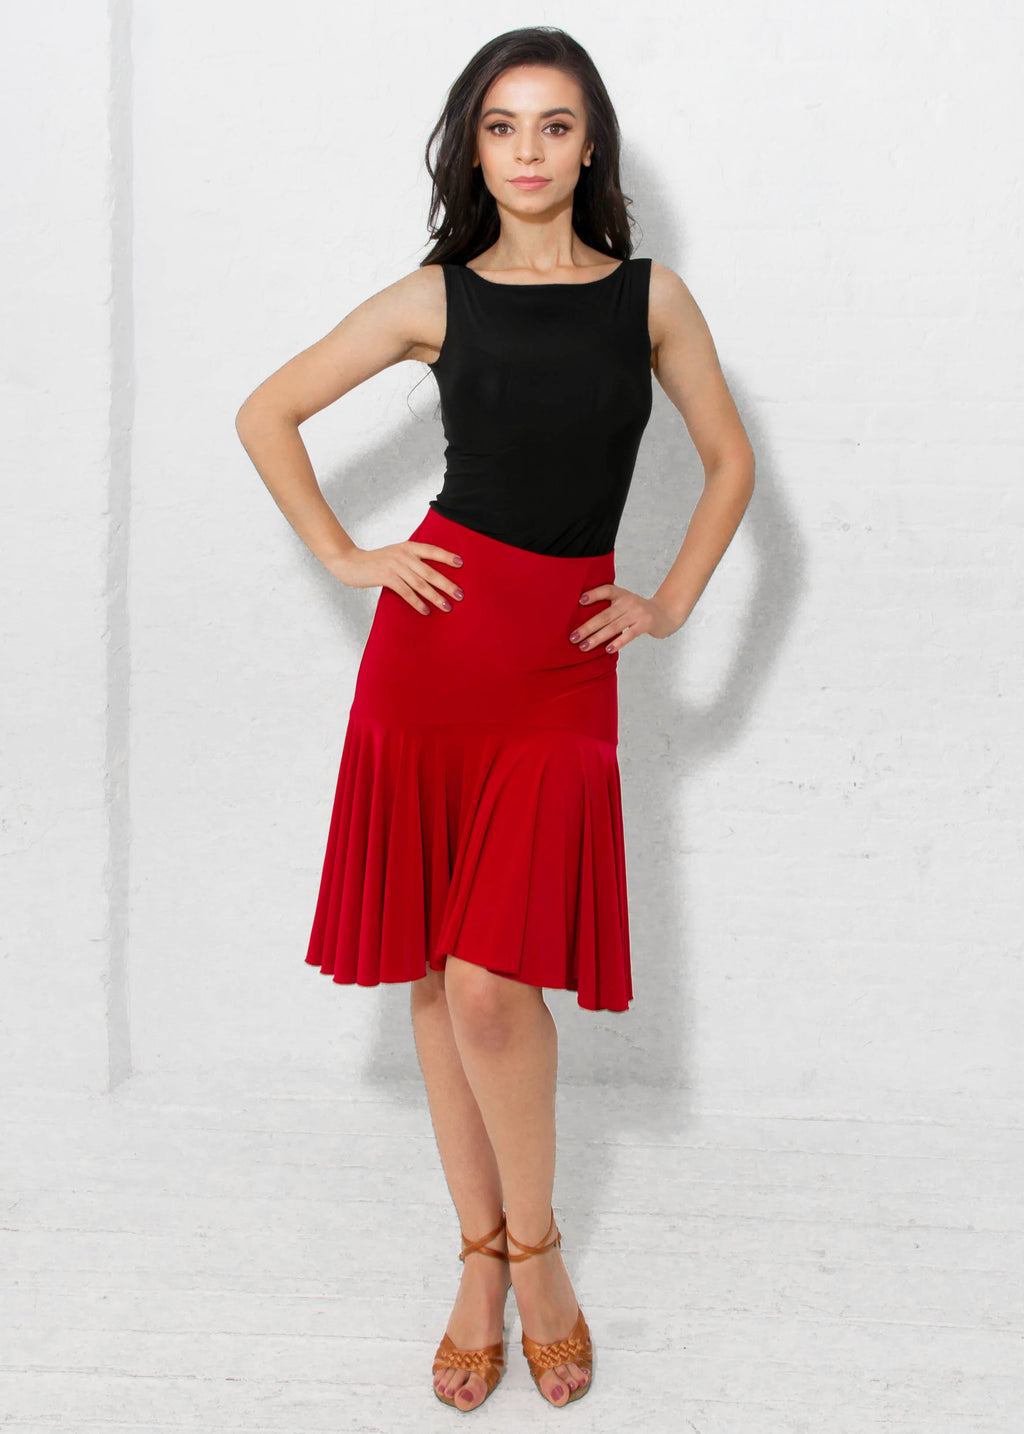 Miari ruffled red latin ballroom dance skirt with wide elastic waistband, flared and provides plenty of movement.